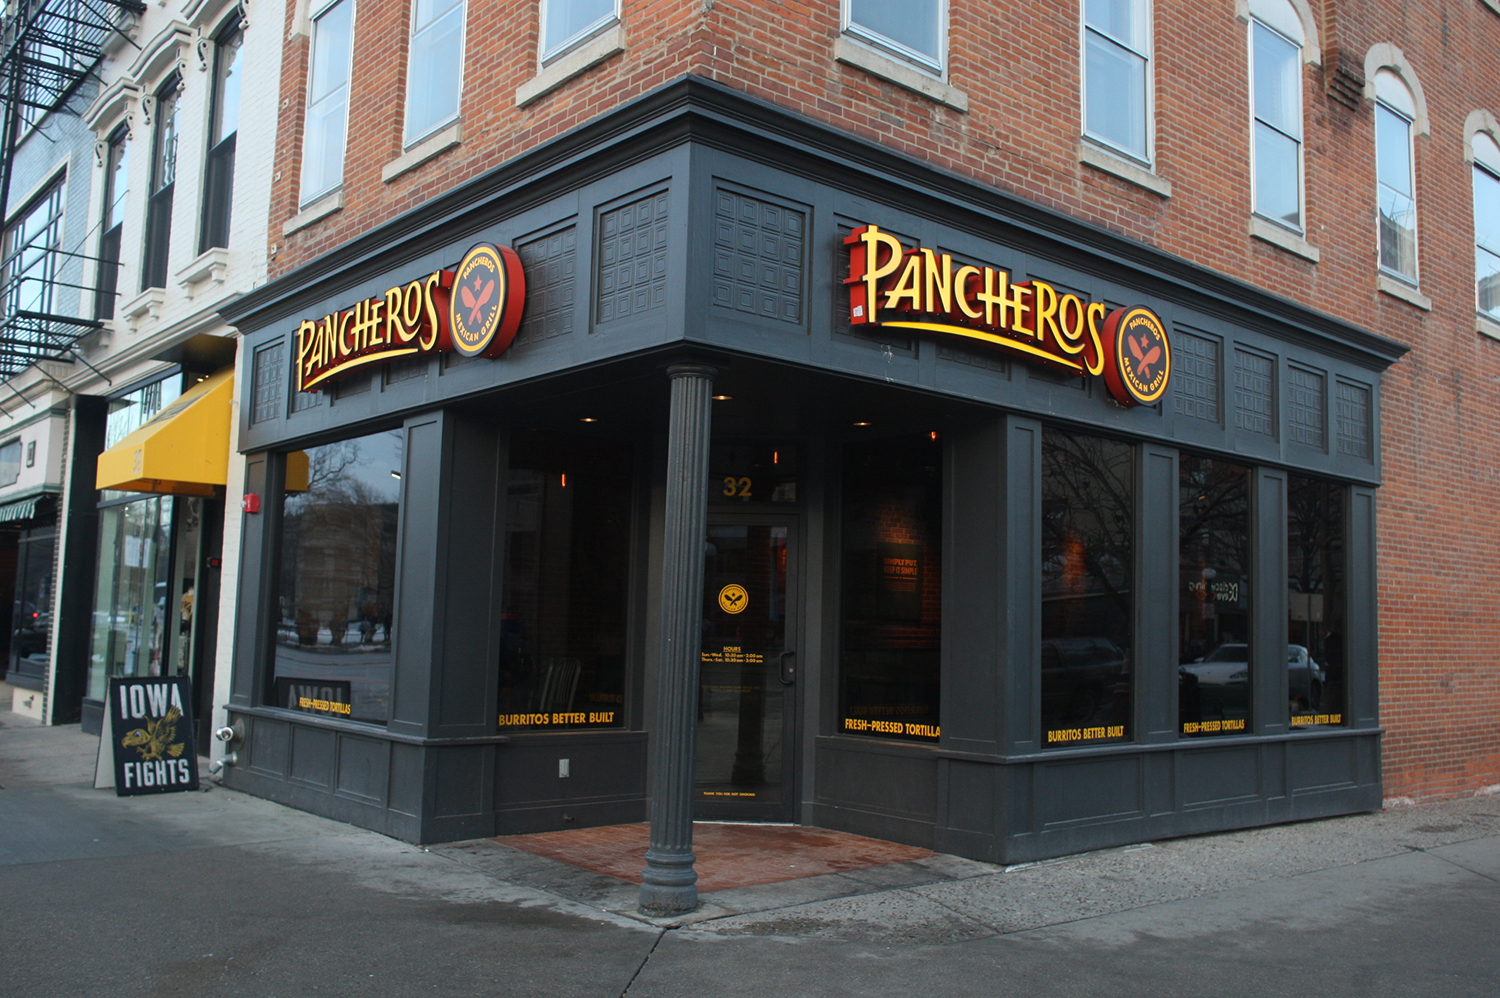 Pancheros sits open downtown Iowa City on Monday, Jan. 26, 2015. Pancheros is one of four sponsors for Dance Marathon this year.